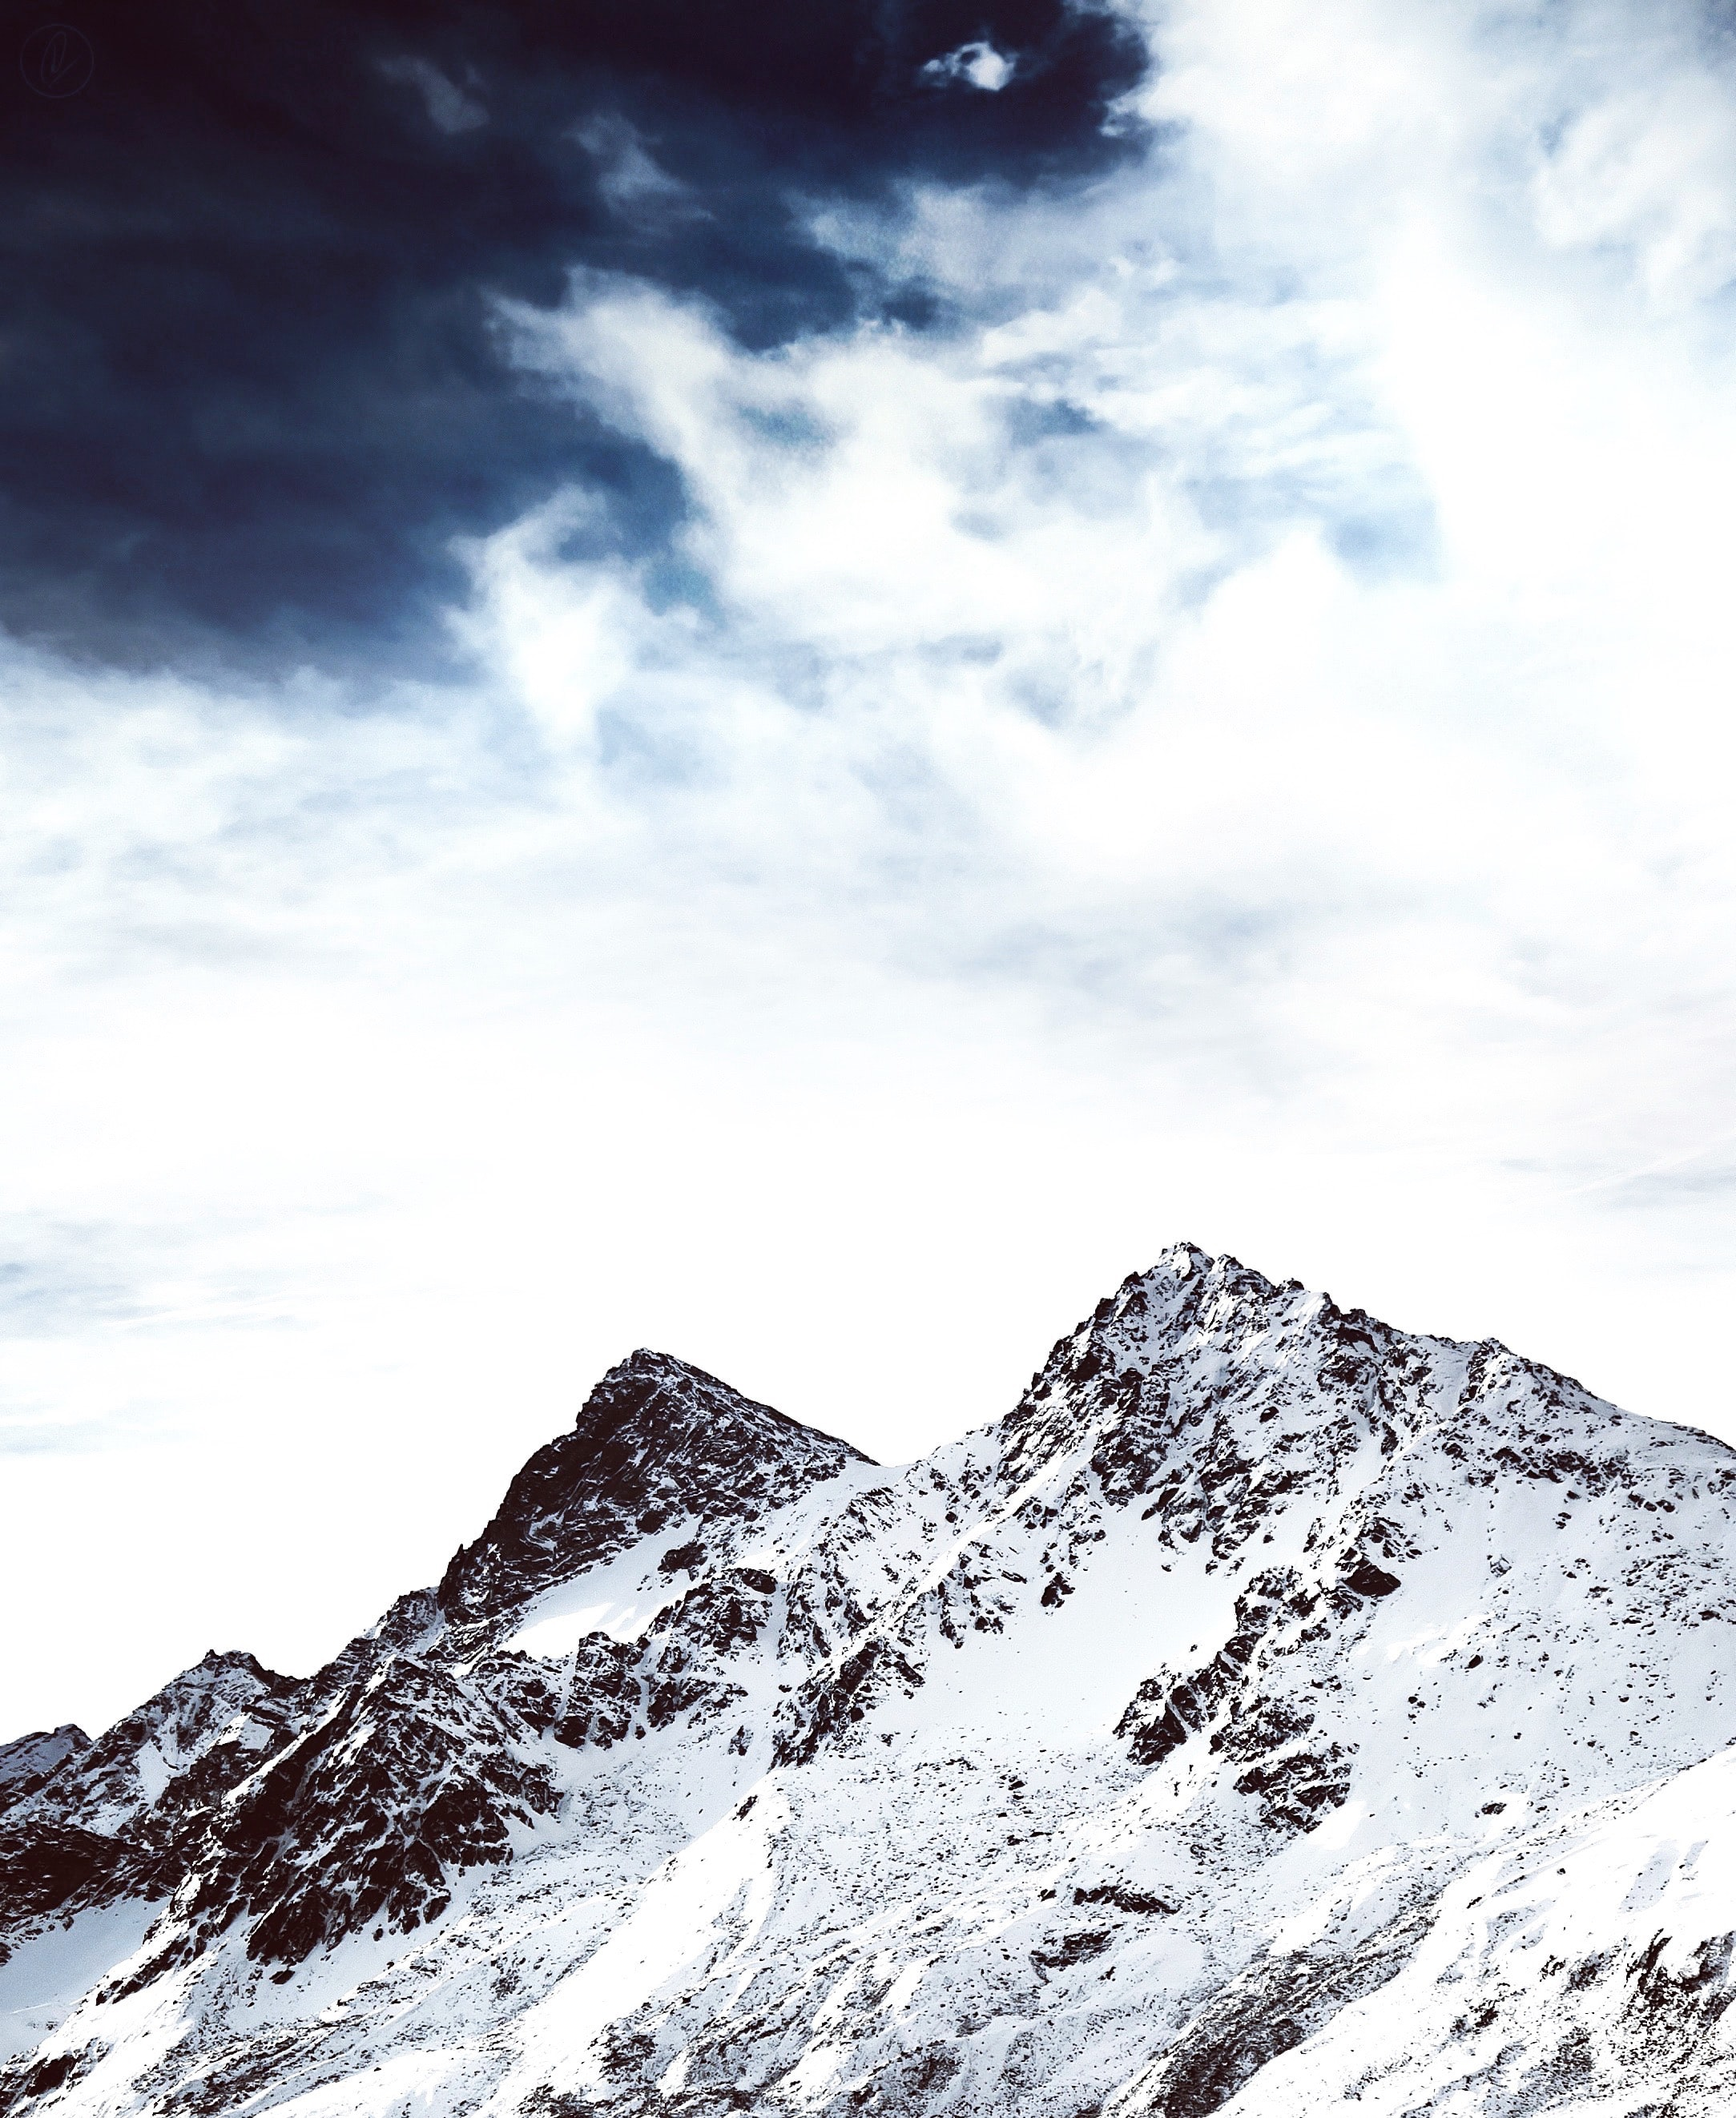 A mountain peak in the snow with a dramatic cloudy sky